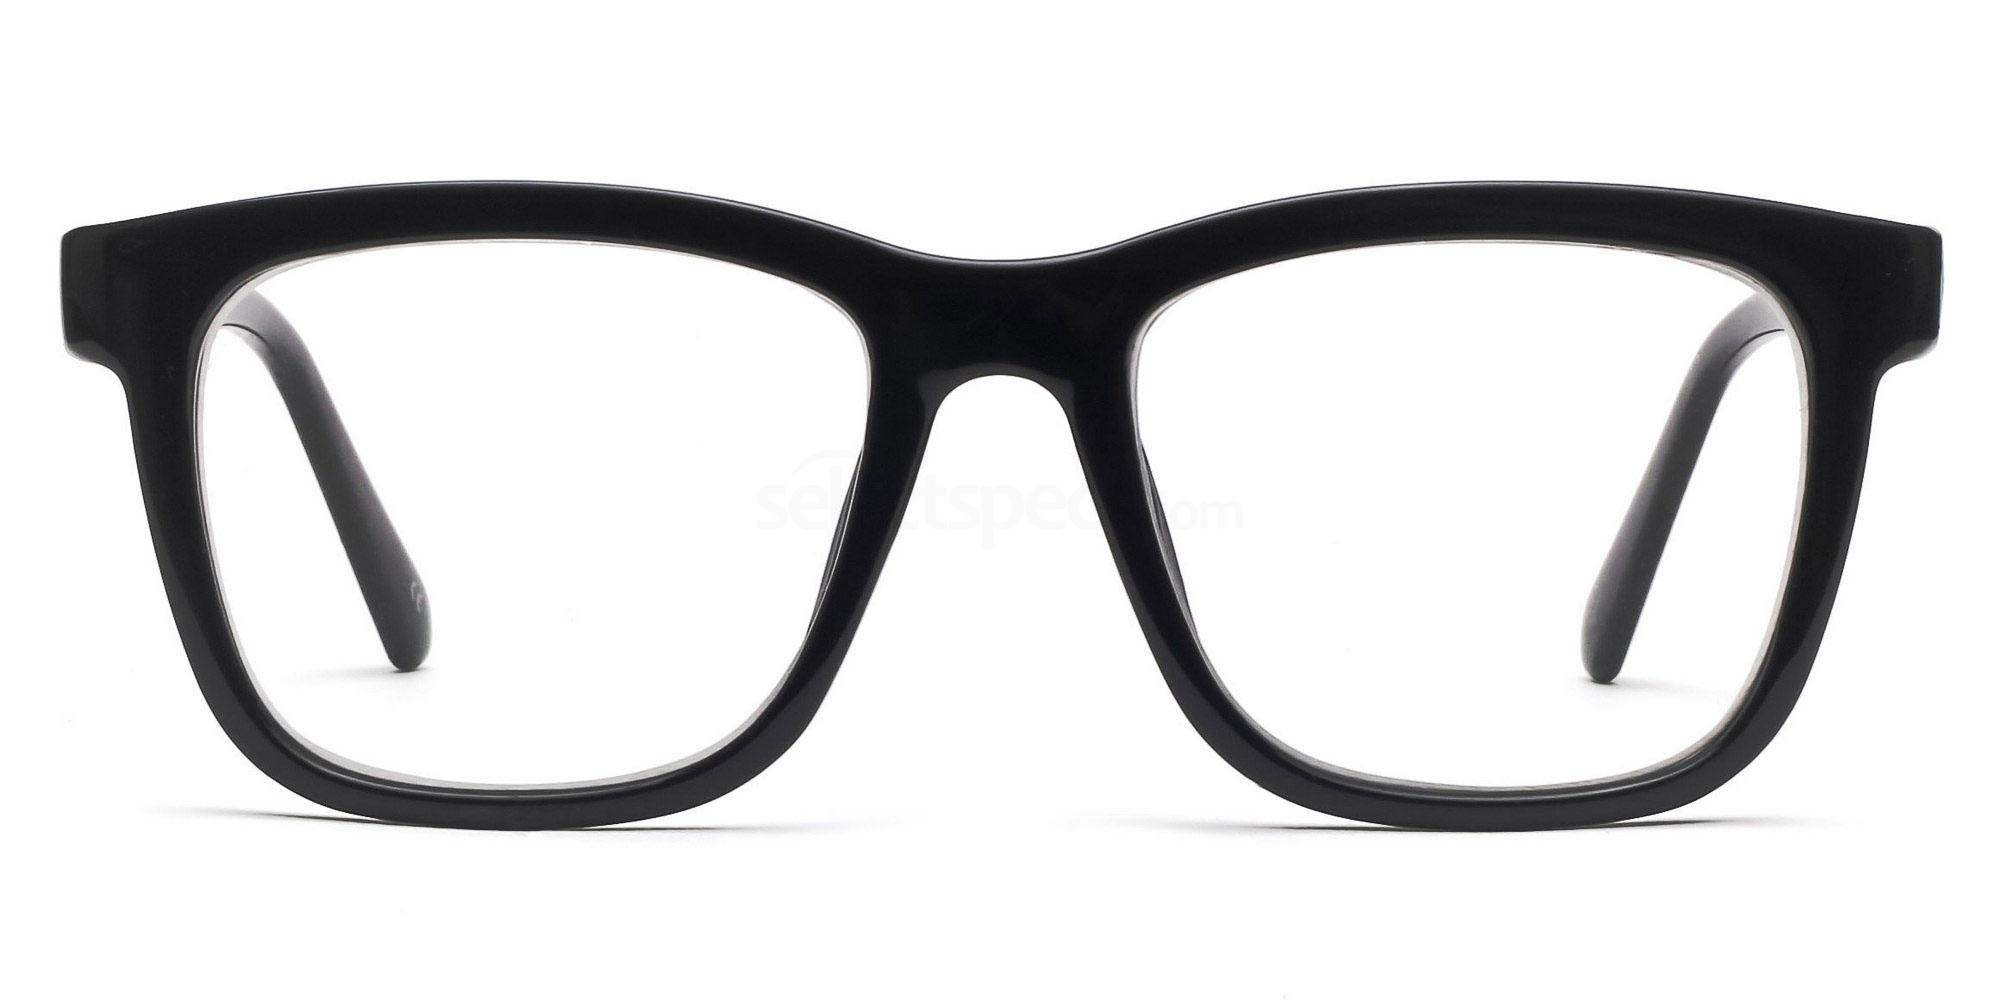 Thick-rimmed-glasses-at-selectspecs